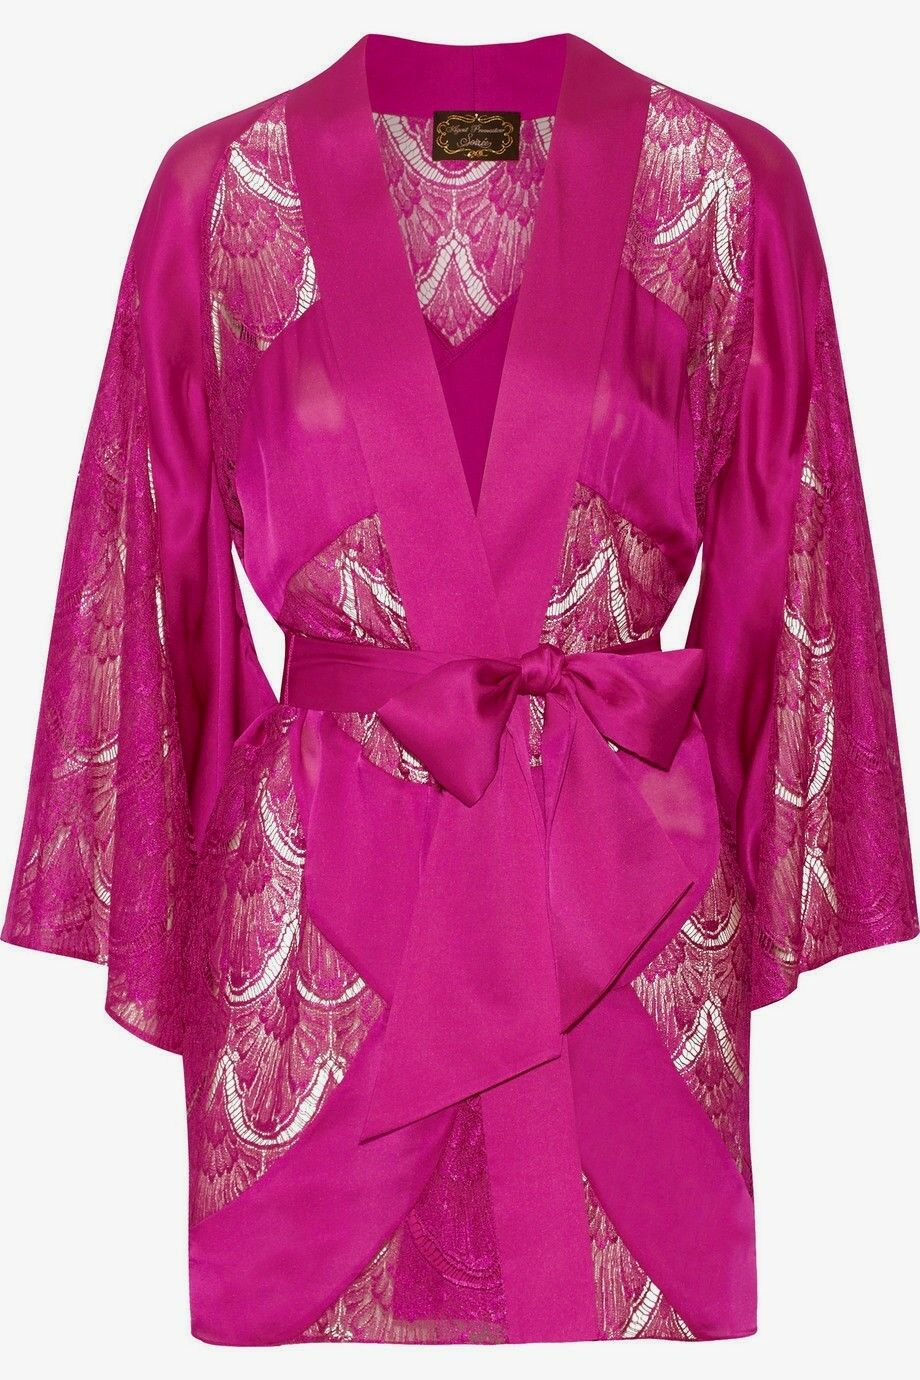 Agent Provocateur Soiree S M Kimono wrap GOWN pink silk lace EMIE new & gift box